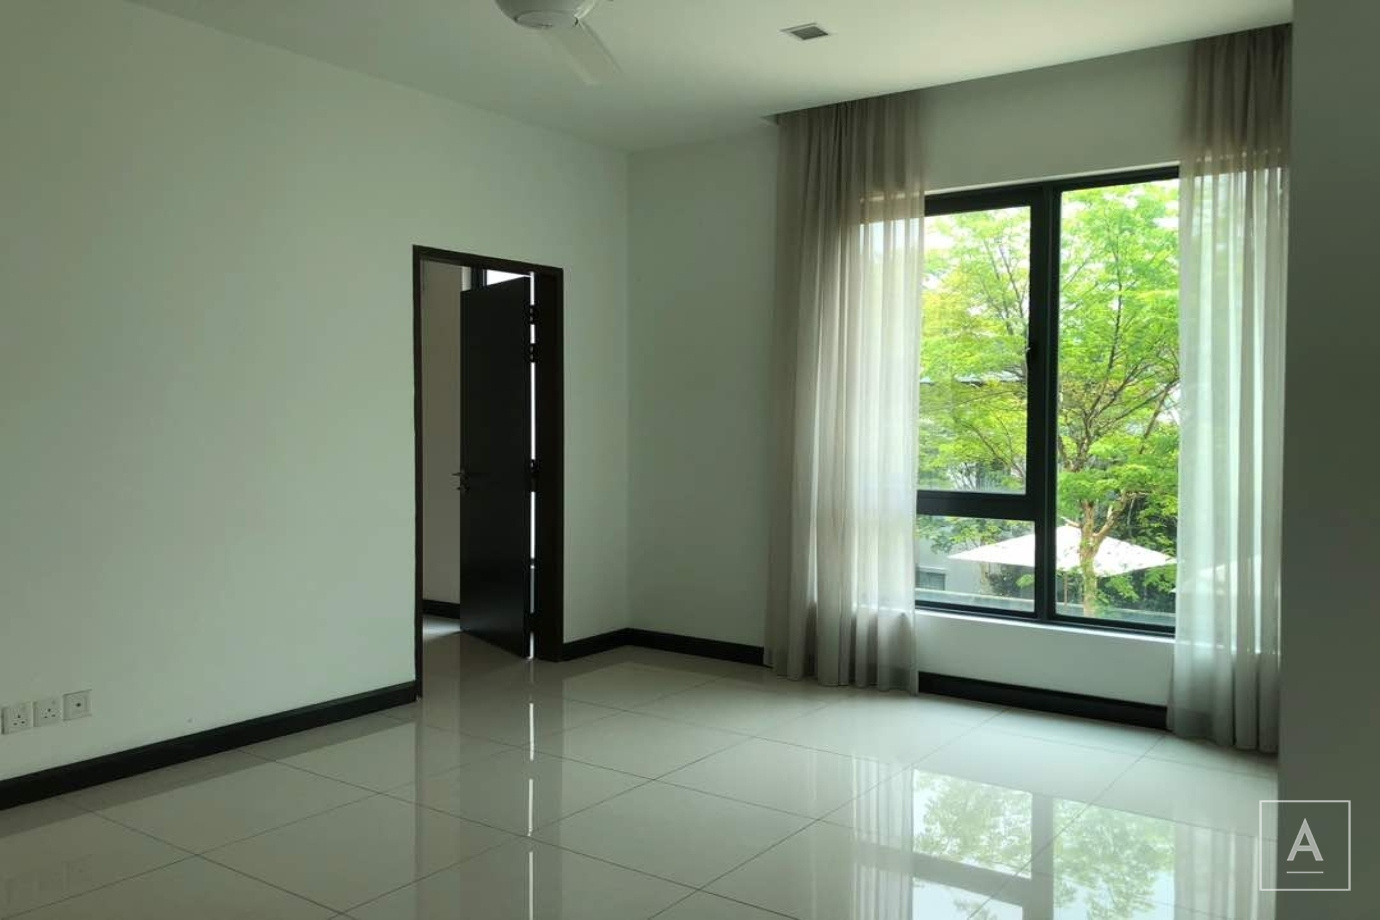 10 Damansara Heights, Damansara Heights,Kuala Lumpur, 1 Bedroom Bedrooms, ,2 BathroomsBathrooms,Condominium / Serviced Residence,To Let,10 Damansara Heights,Jalan Bukit Kota,1805